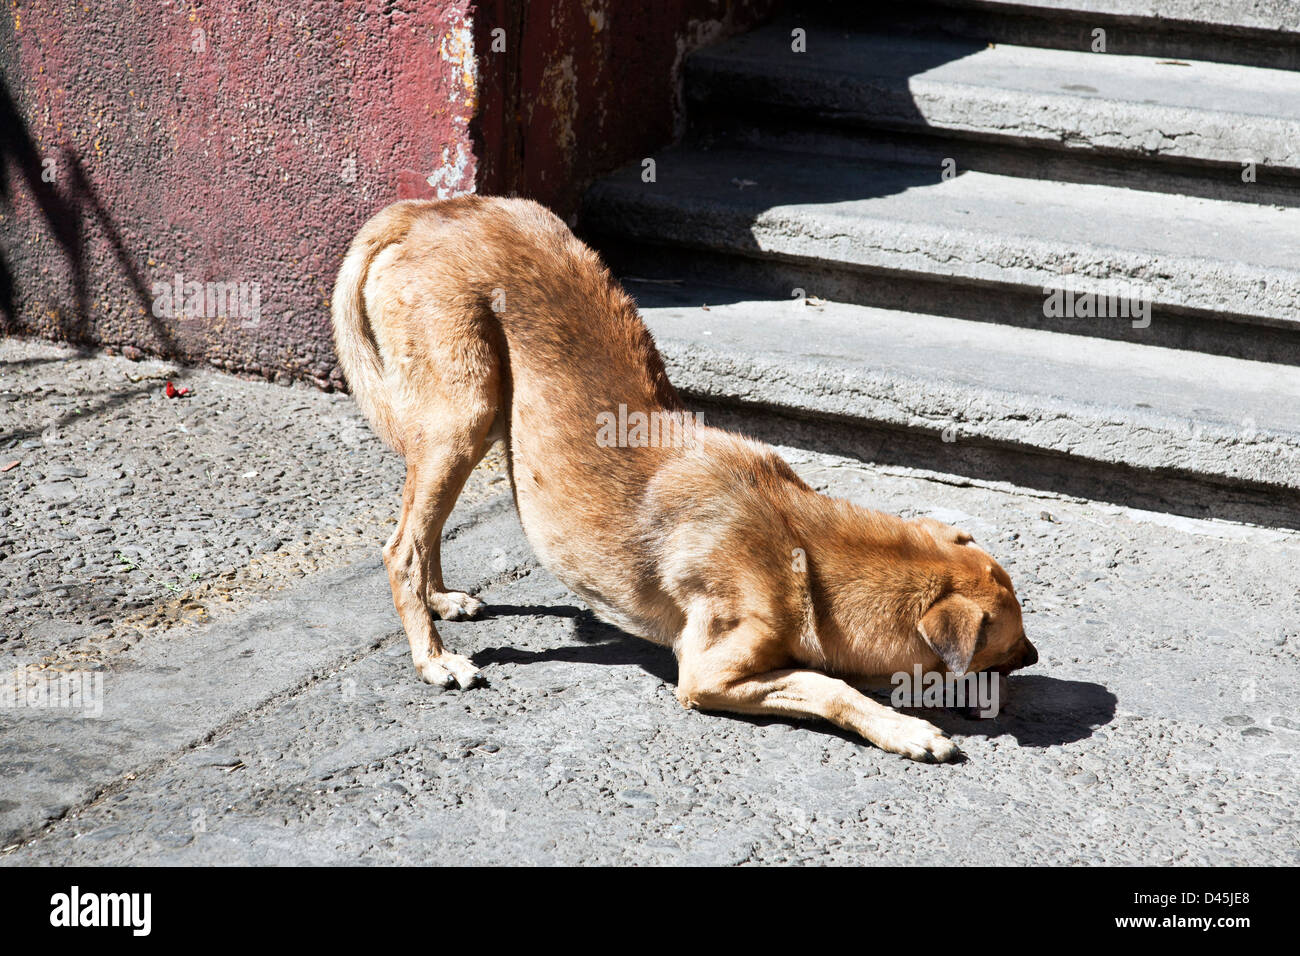 gaunt young stray dog with visible backbone & no collar worries delicious donated bone outside La Merced market - Stock Image